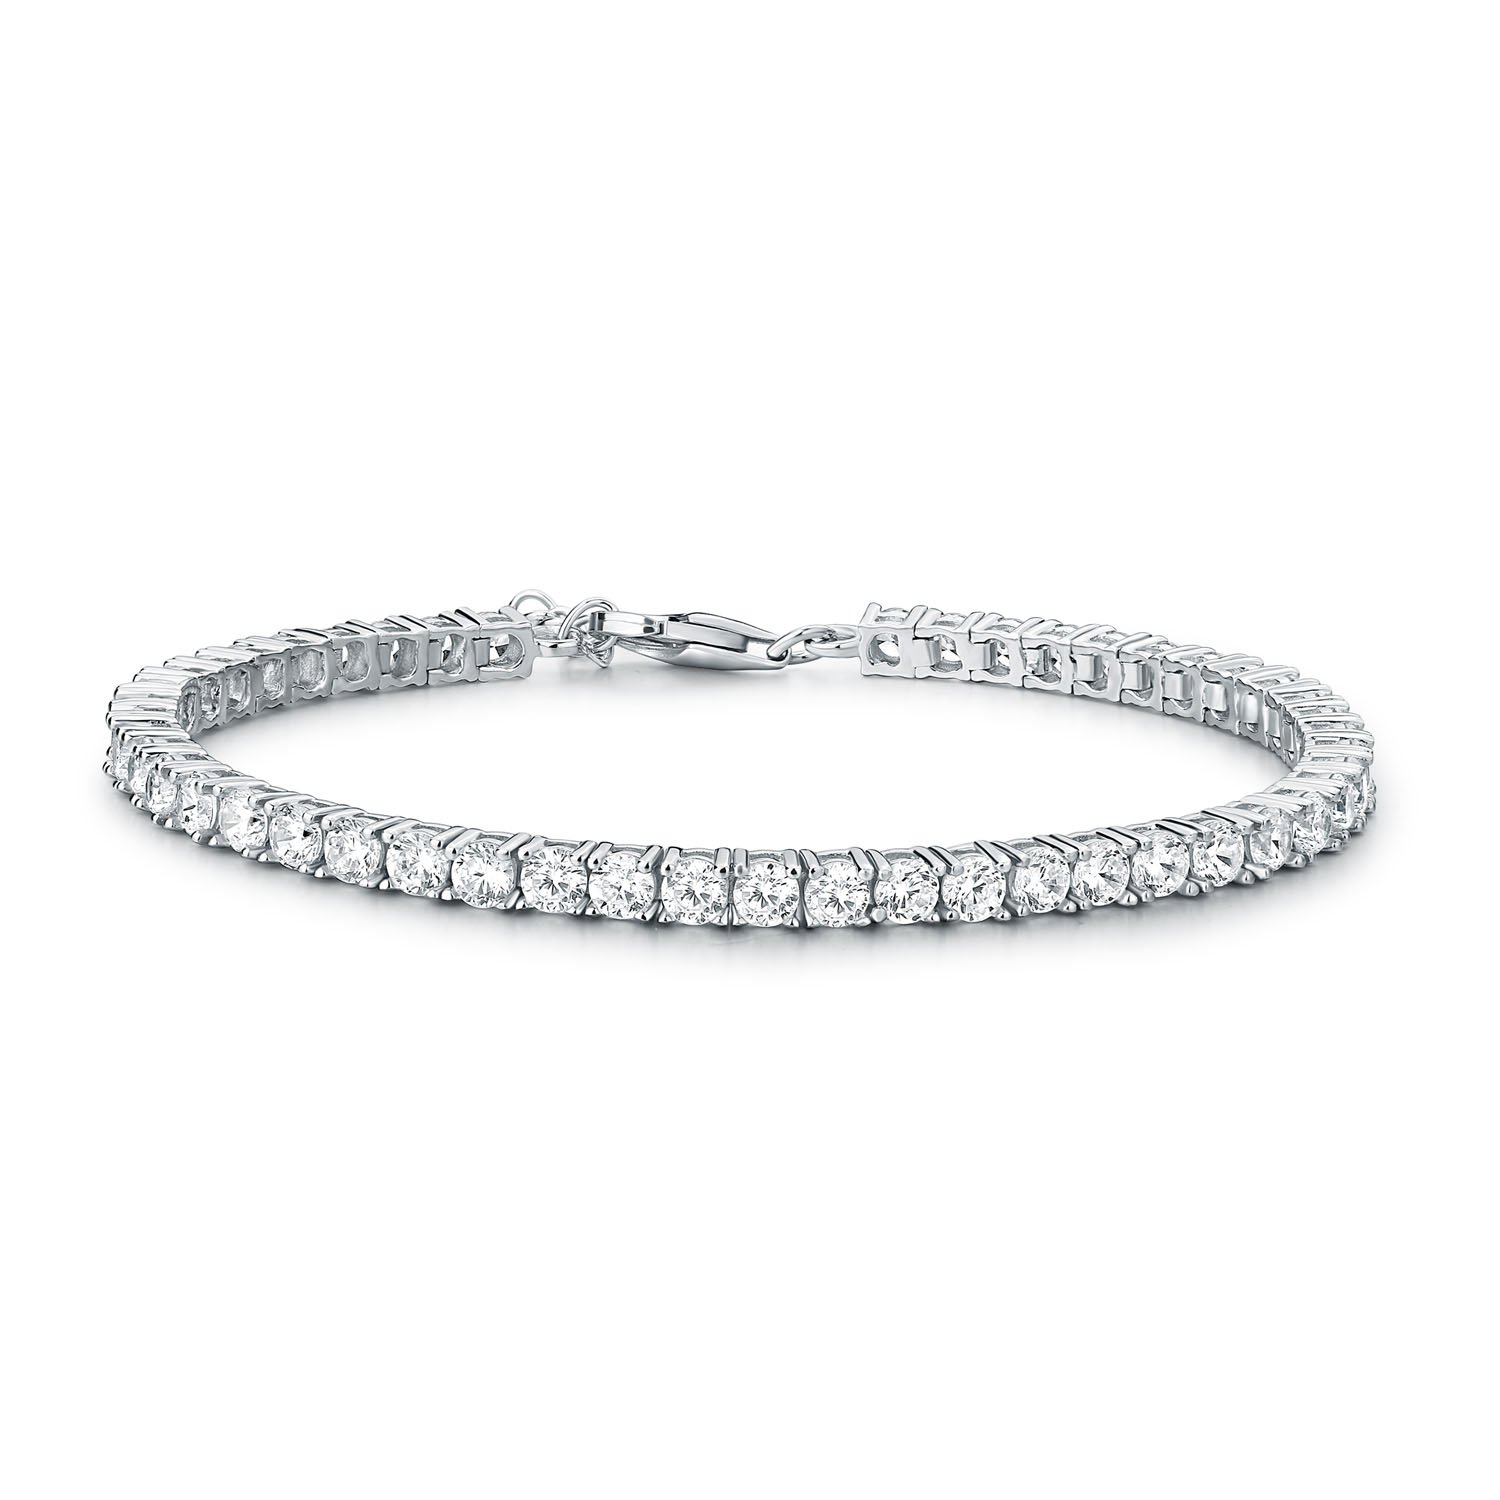 Silver Ladies Eternity Bracelet is the Perfect Jewellery Gift for Women. 925 STERLING SILVER Diamond Treats Tennis Bracelet for Women Emerald Ruby or Flawless White Cubic Zirconia 3mm Sapphire